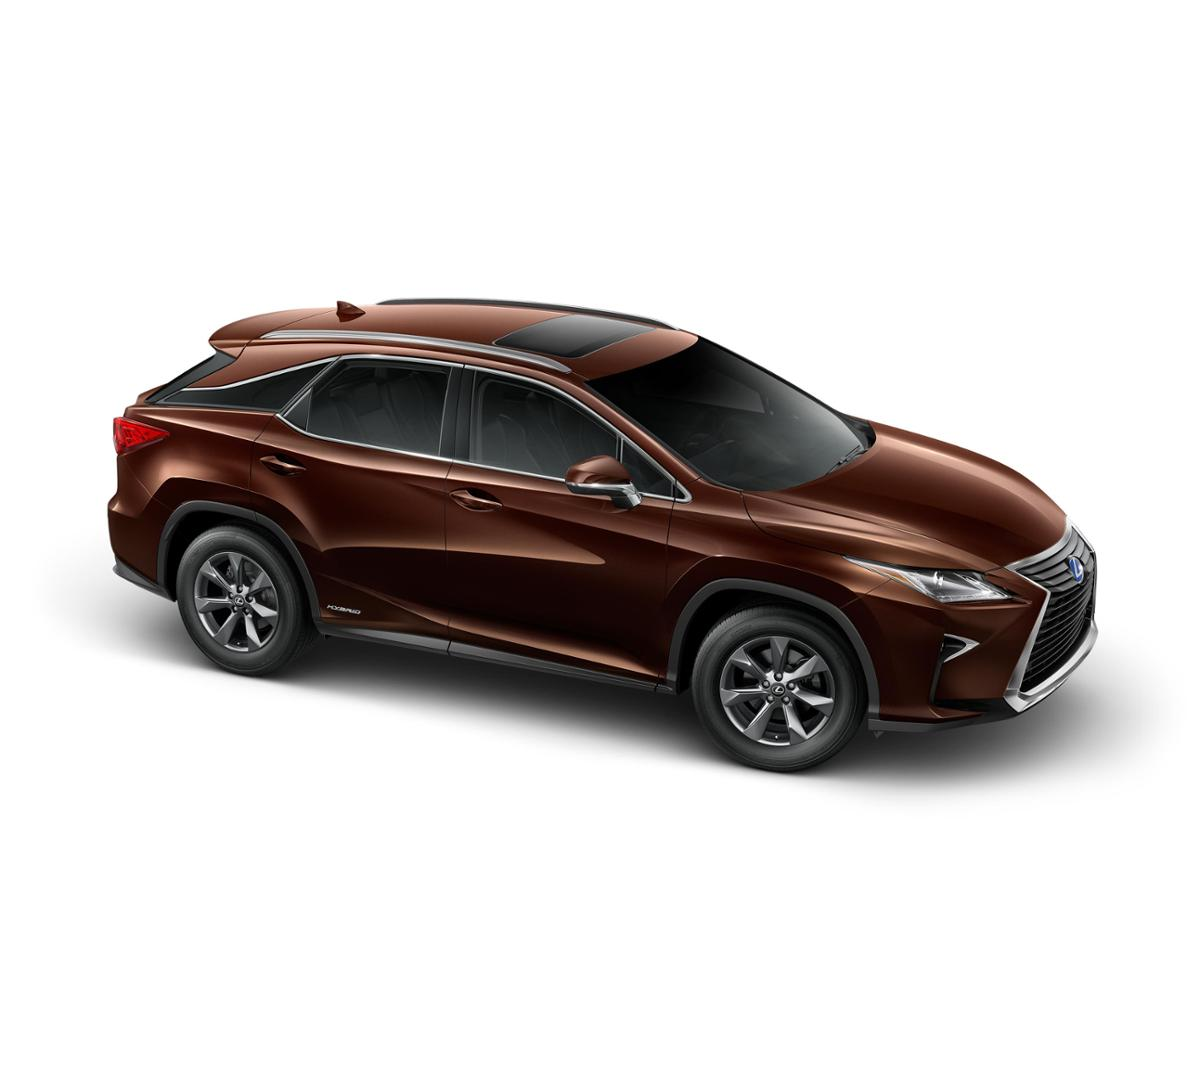 New 2019 Lexus RX 450h For Sale In Escondido, CA